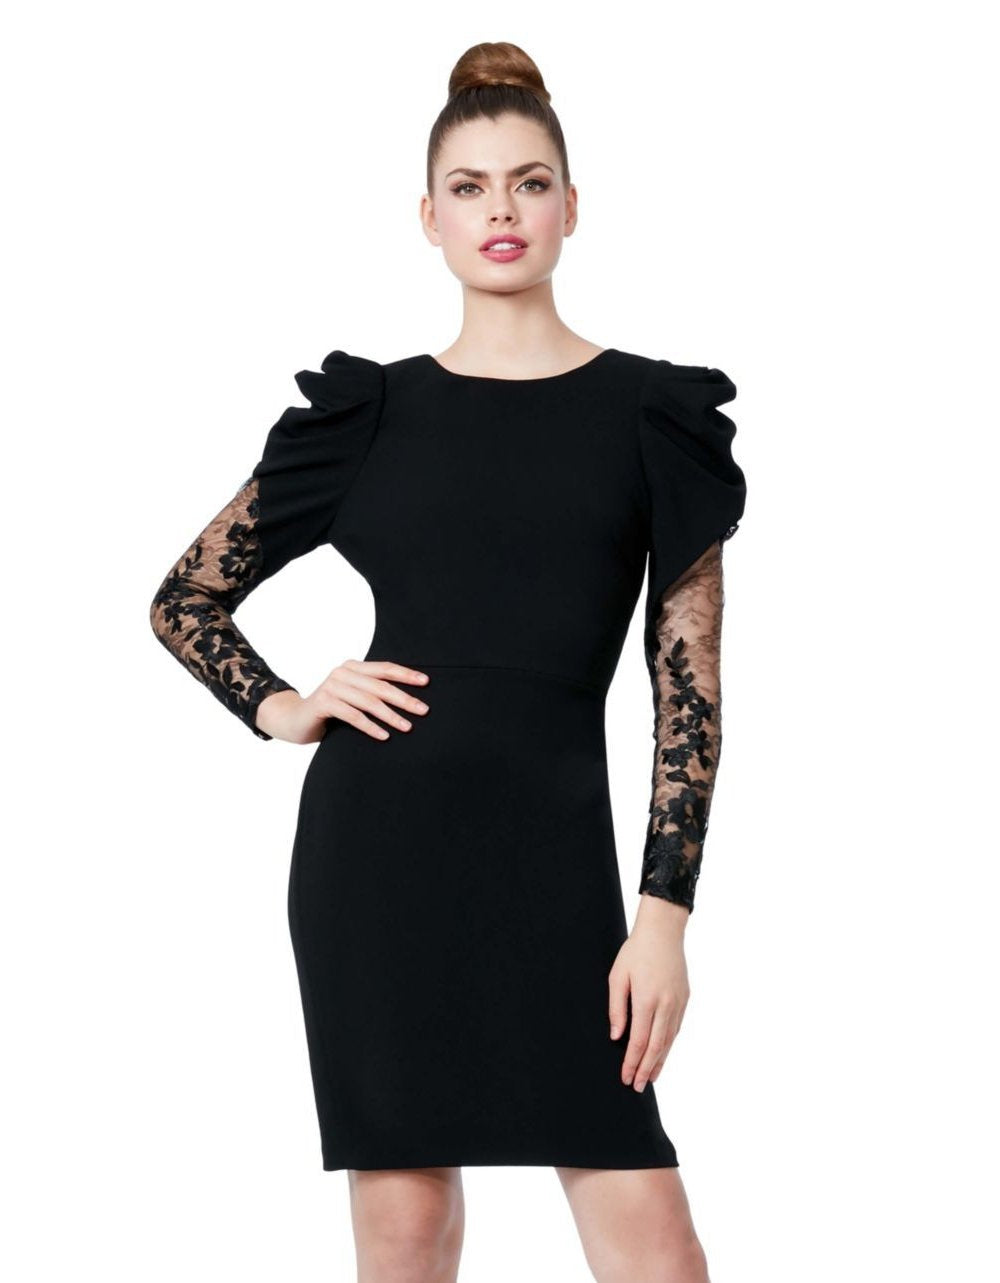 LADY LACE SLEEVE DRESS BLACK - APPAREL - Betsey Johnson